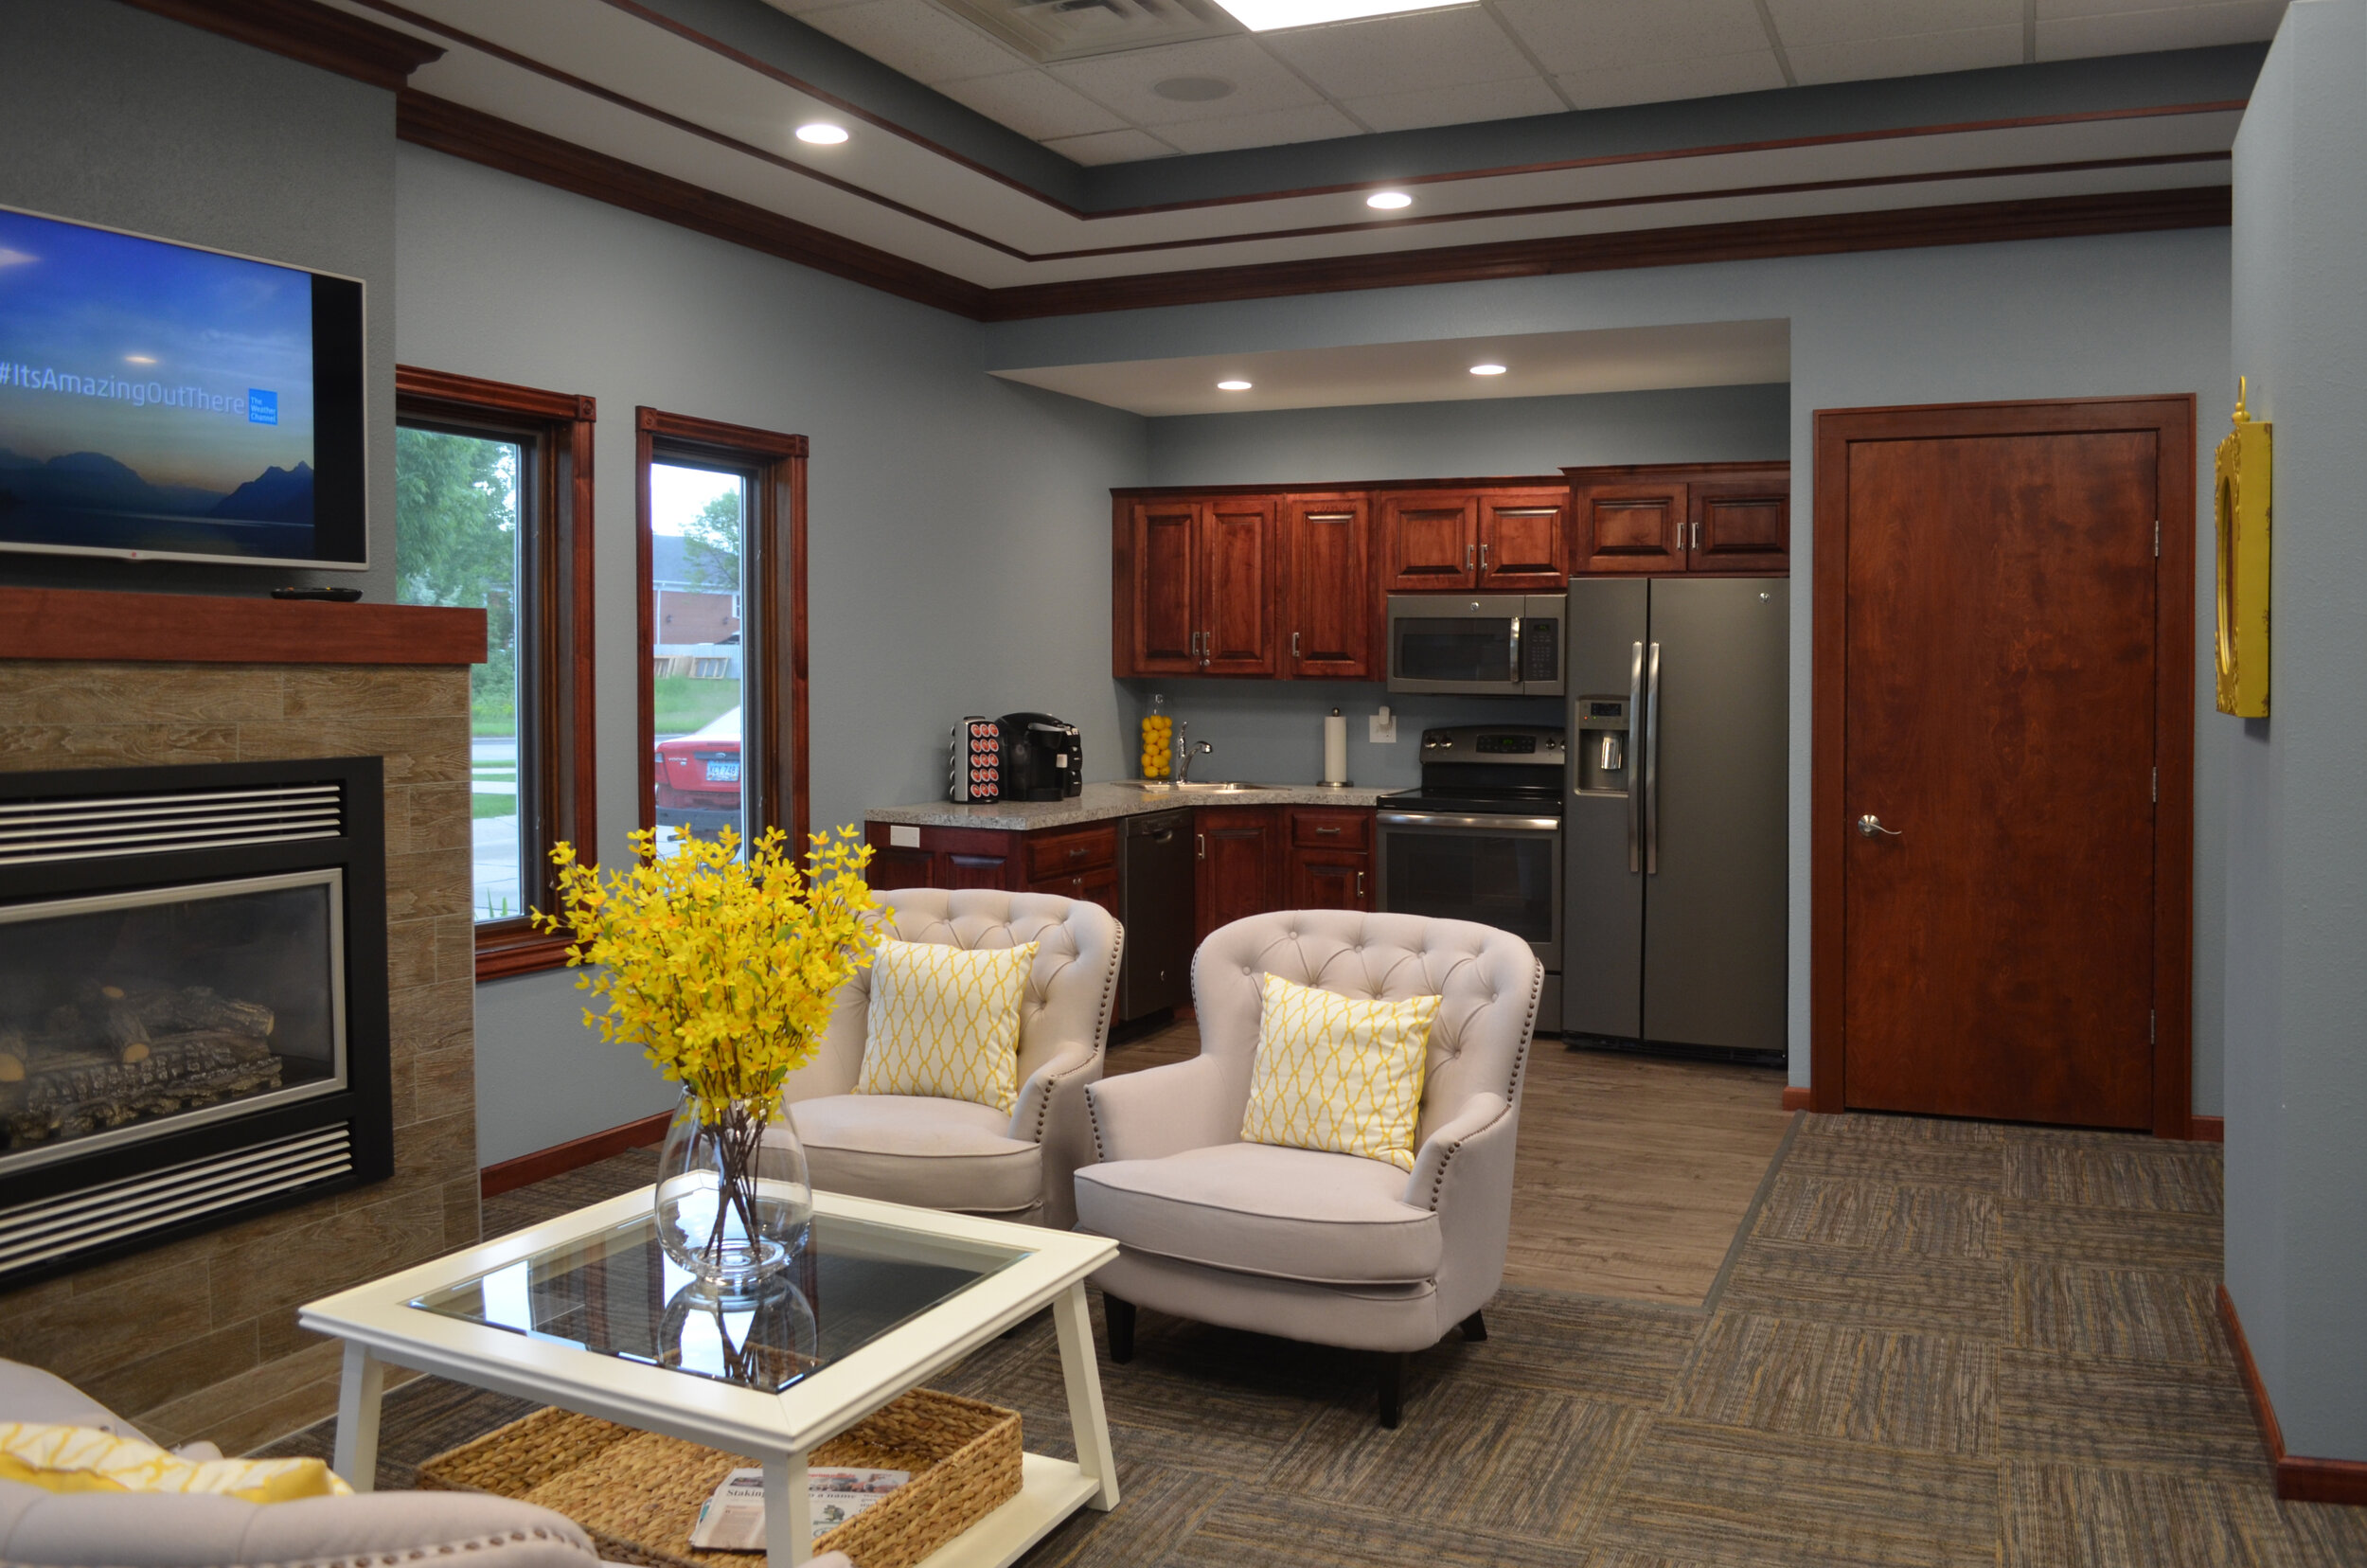 A Beautiful Community Room for Relaxing with or Entertaining Guests